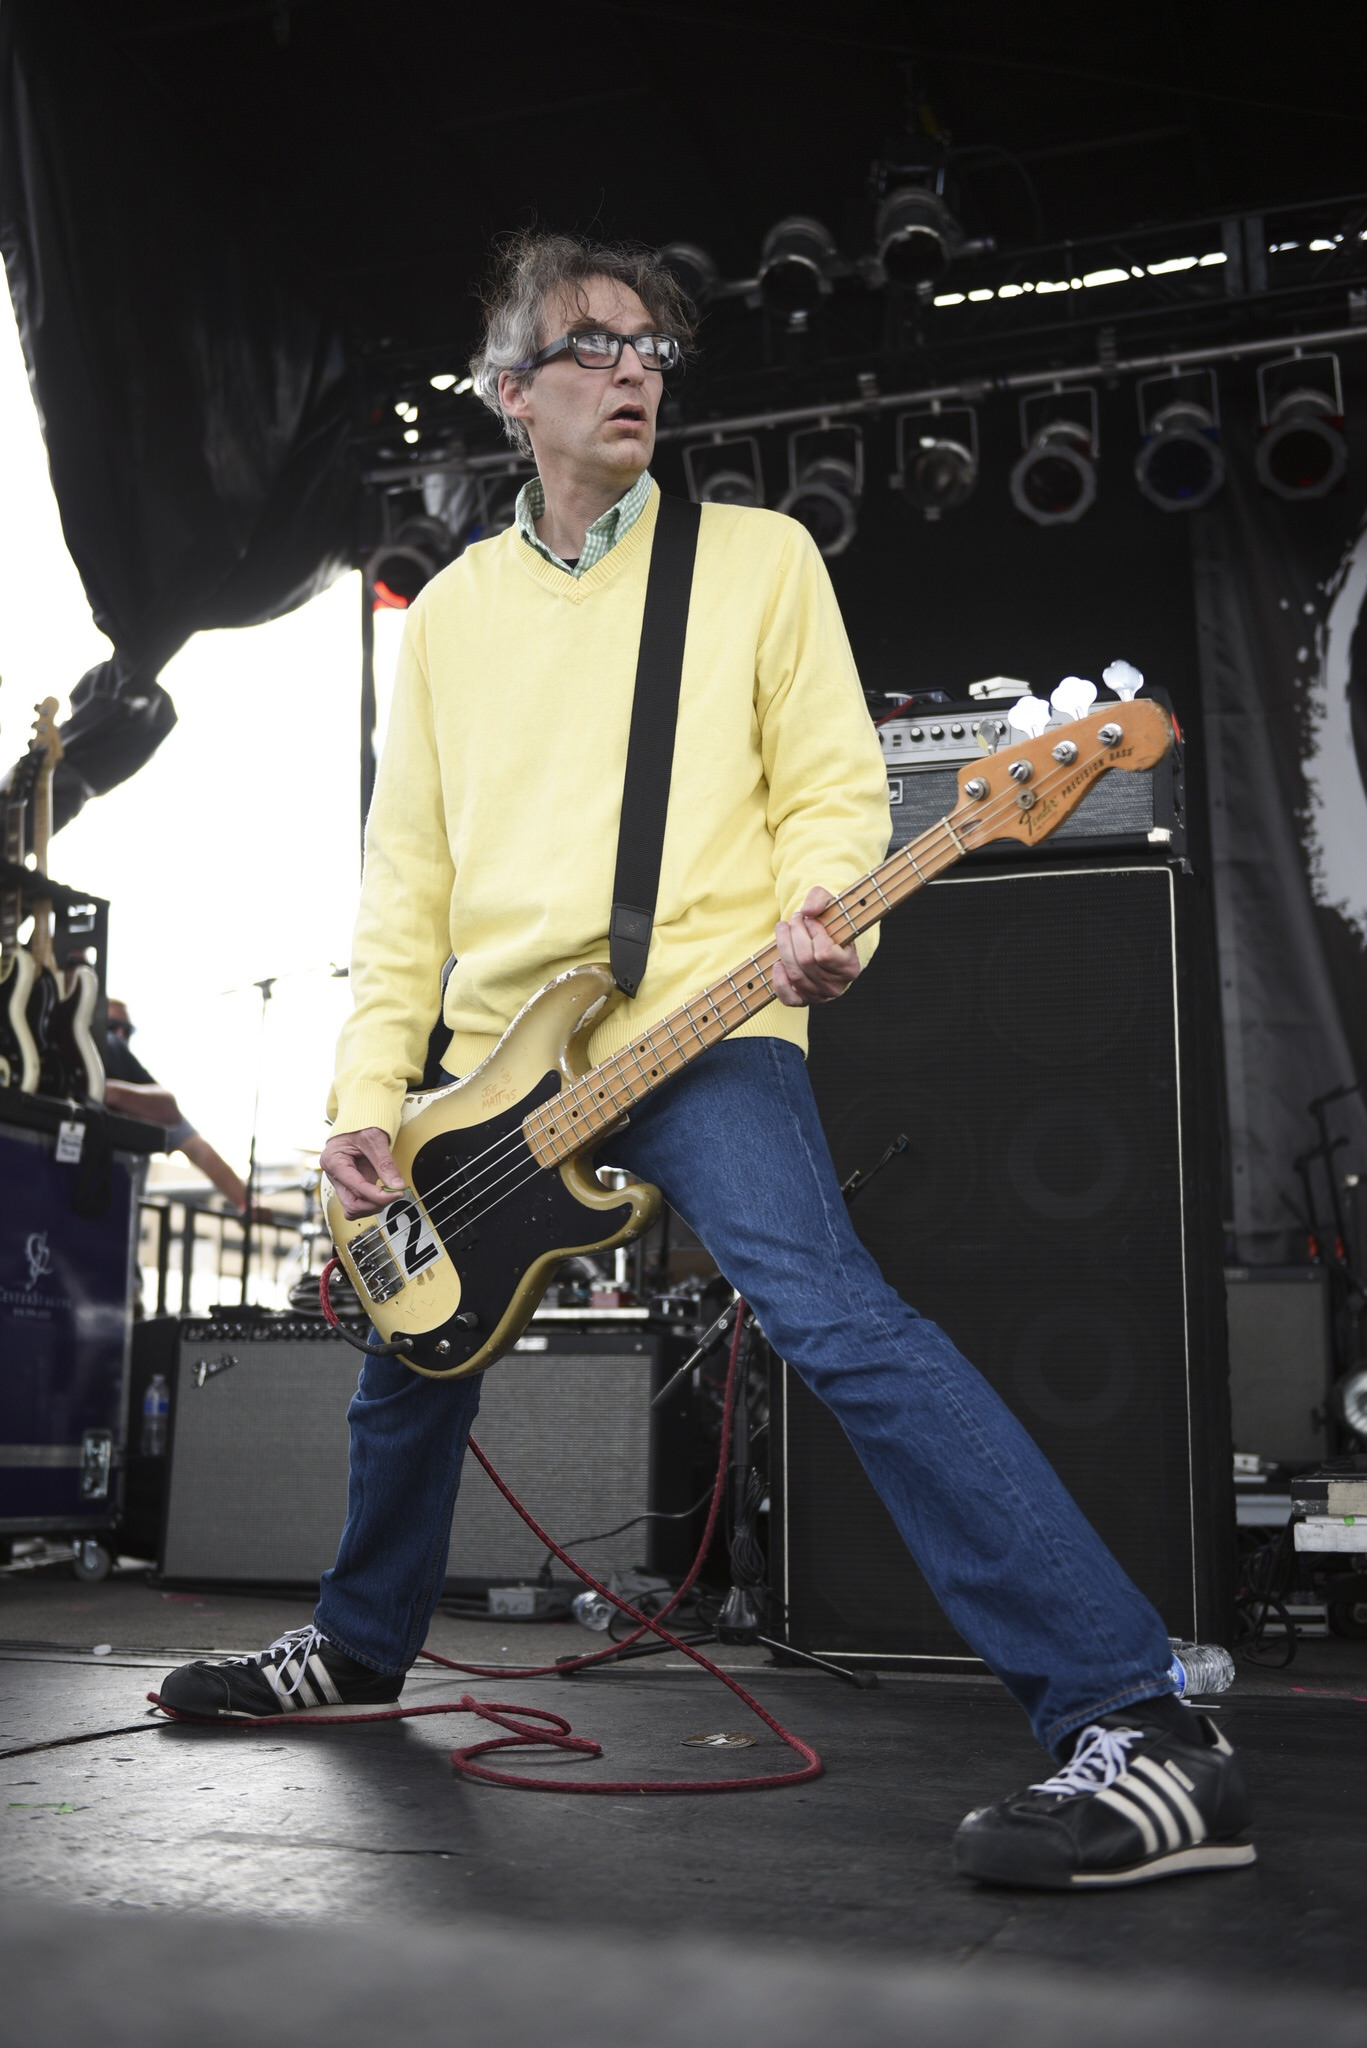 The Muffs played a set at Punk Rock Bowling in downtown Las Vegas